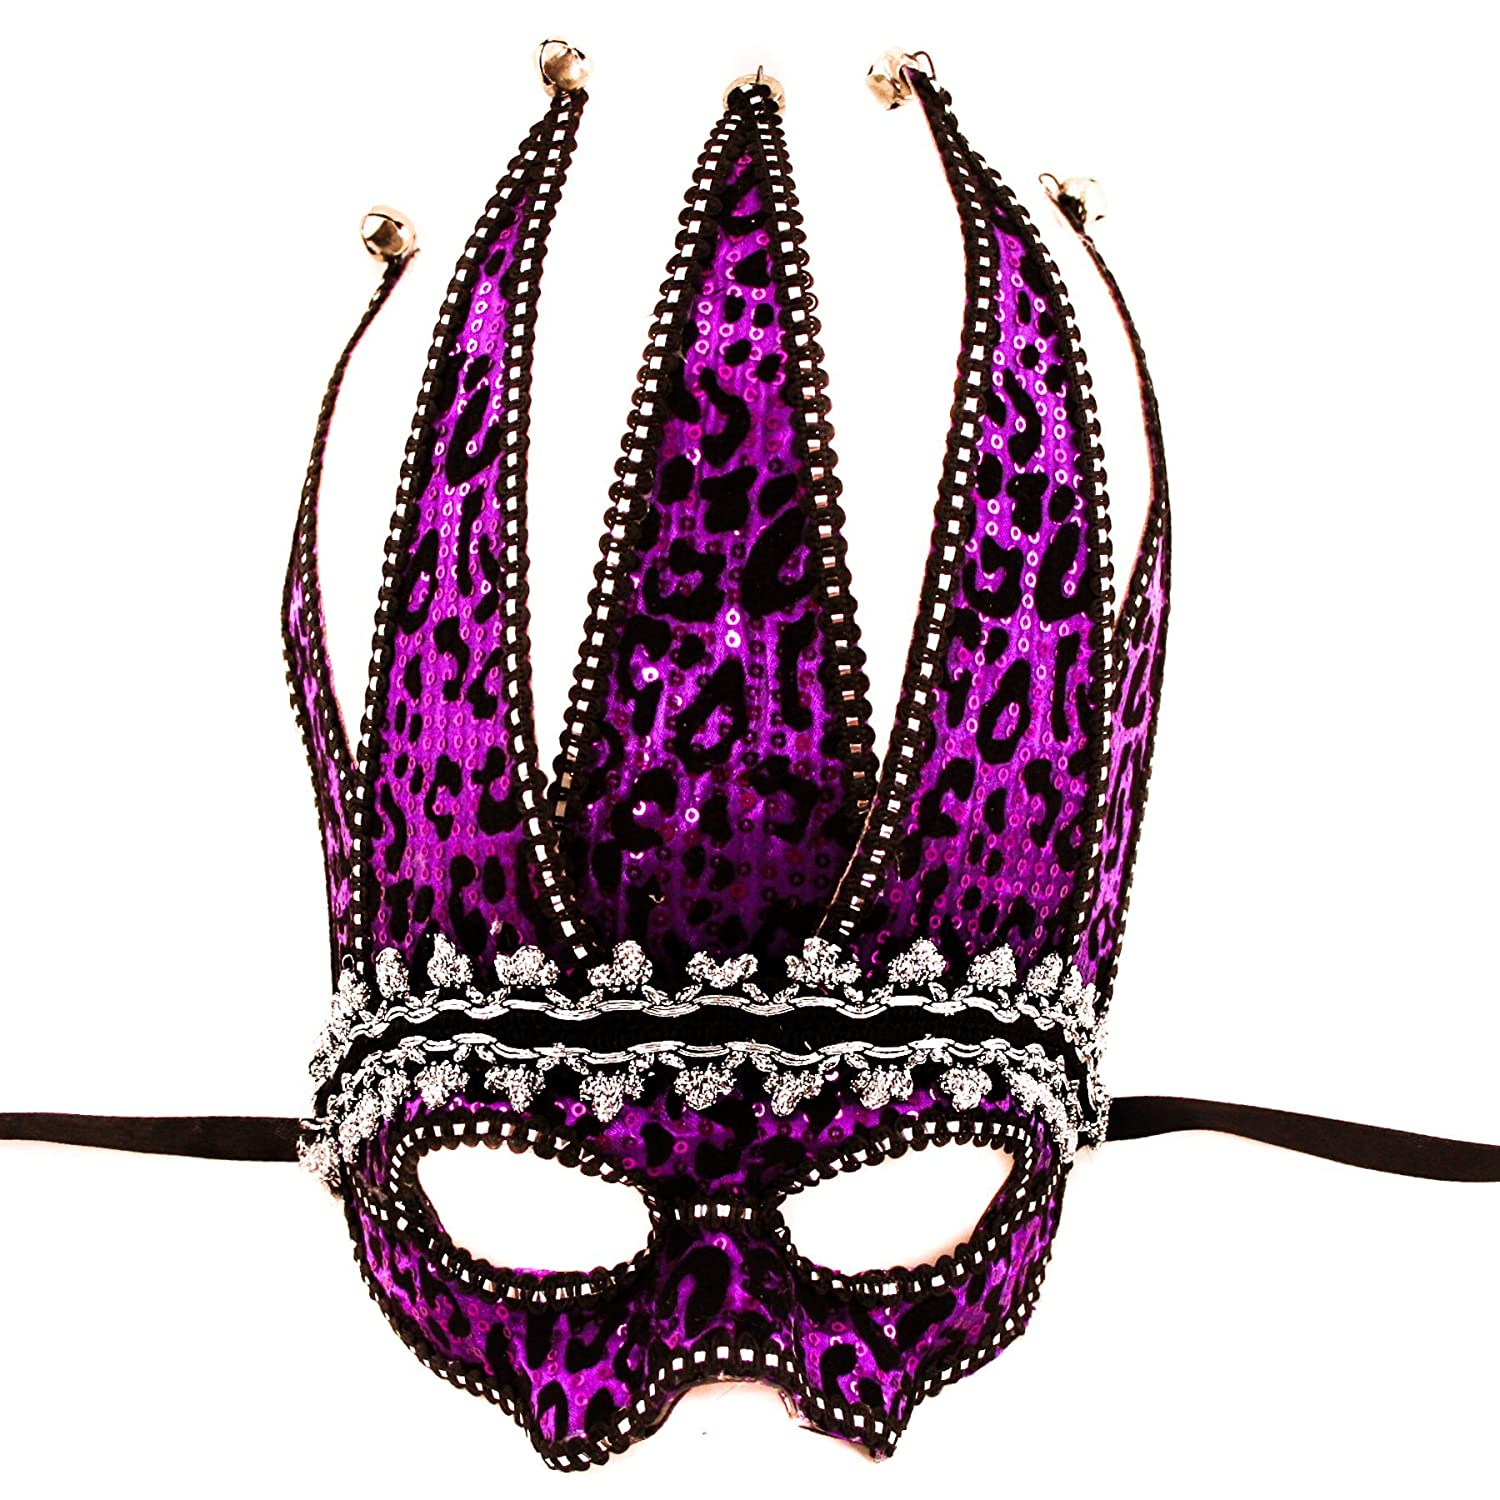 FloristryWarehouse Black & Purple Jester Masquerade Mask Venetian ball party 30x20cm satin ties